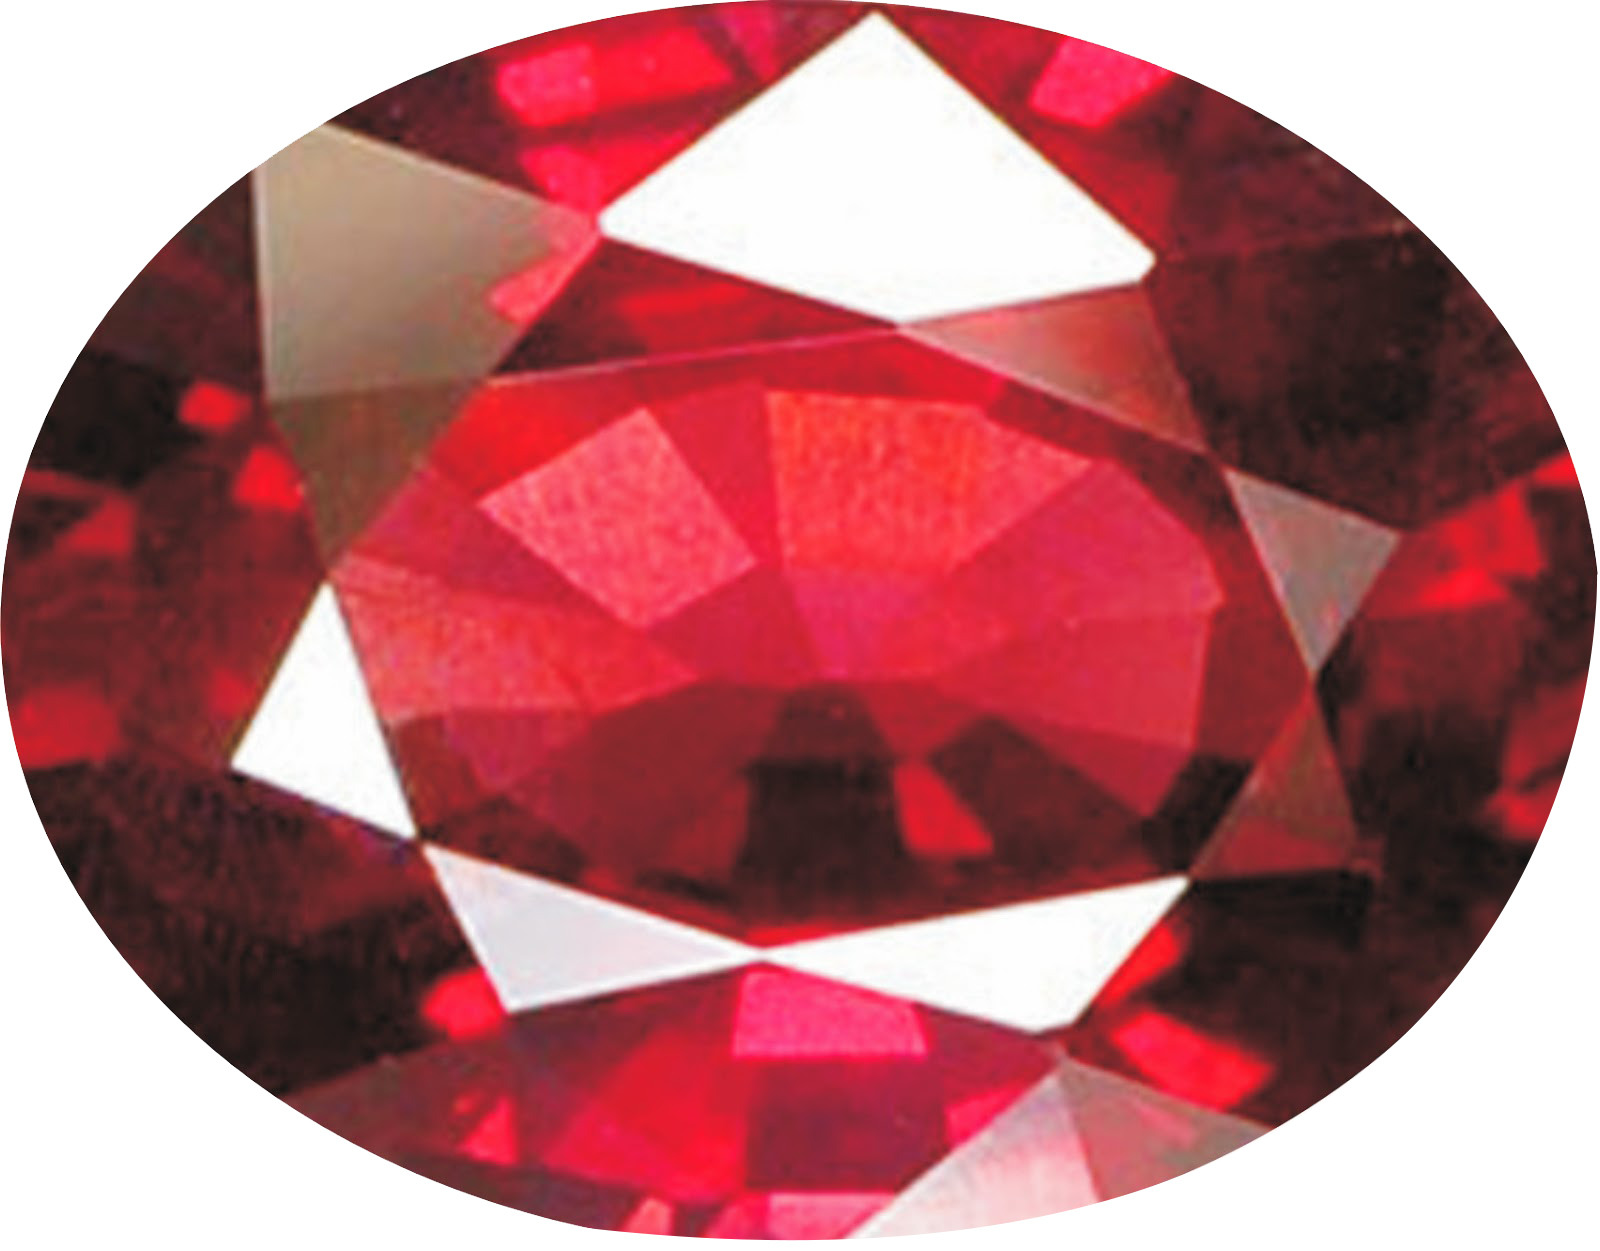 Red stone png. Ruby transparent image transparentpng